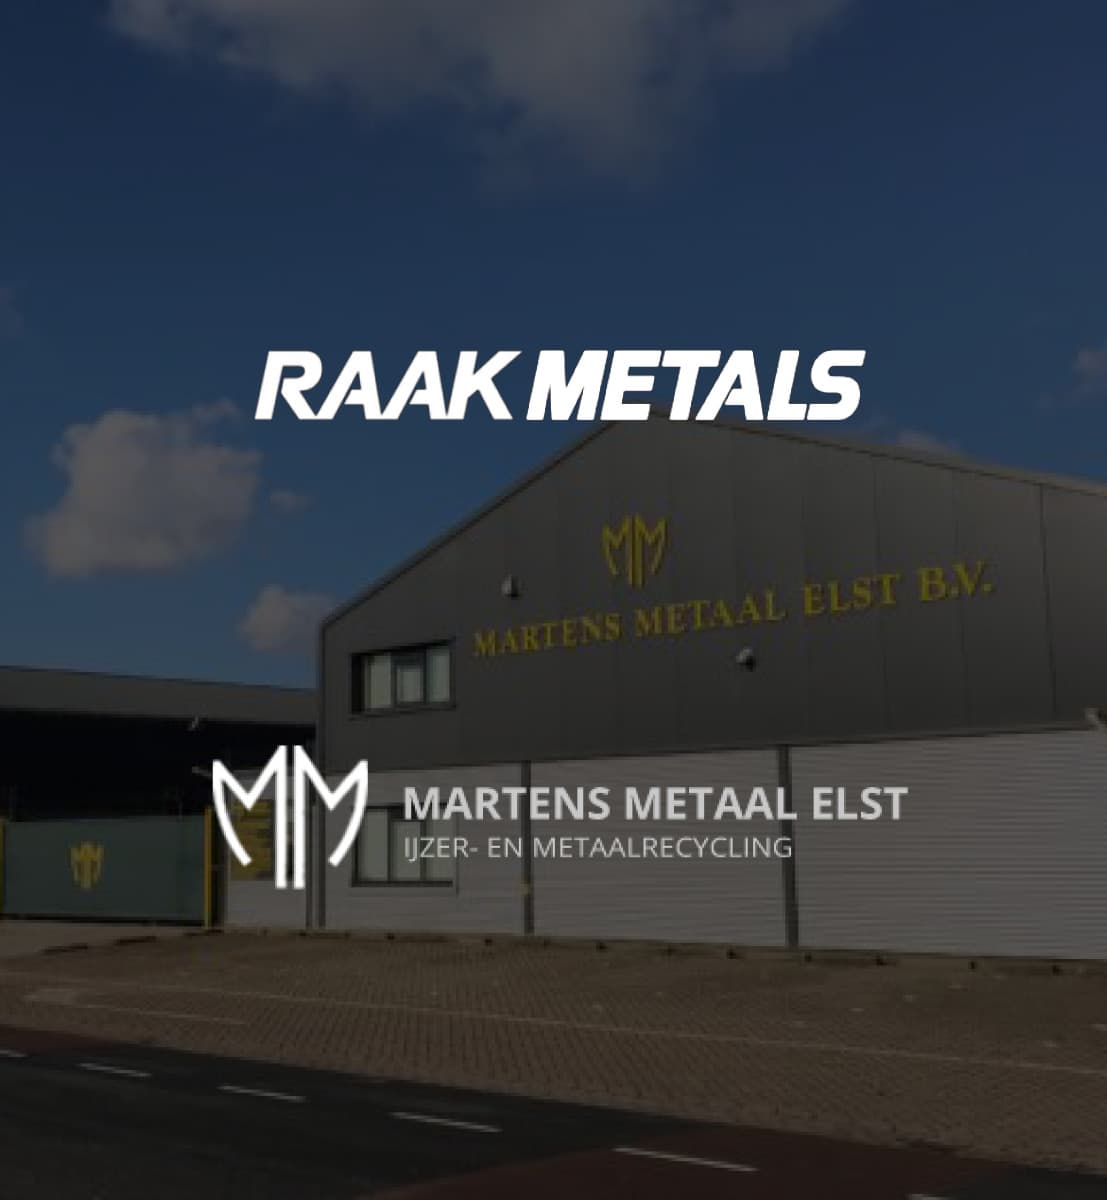 DEX international M&A advised Raak Metals on the acquisition of Martens Metaal